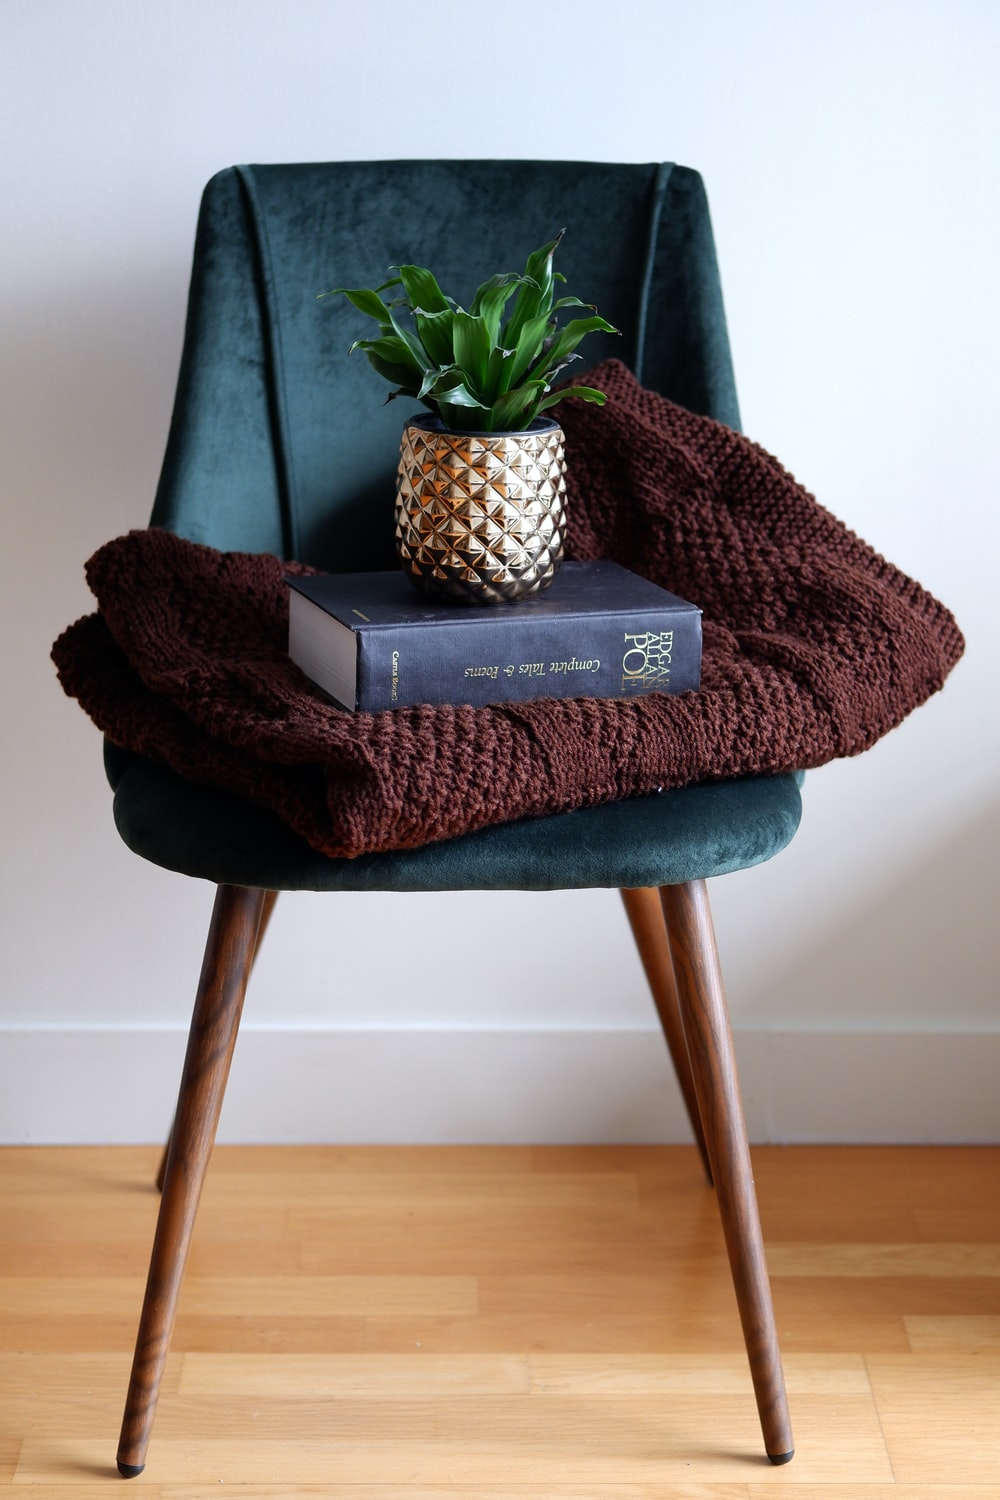 pineapple on black and gray chair